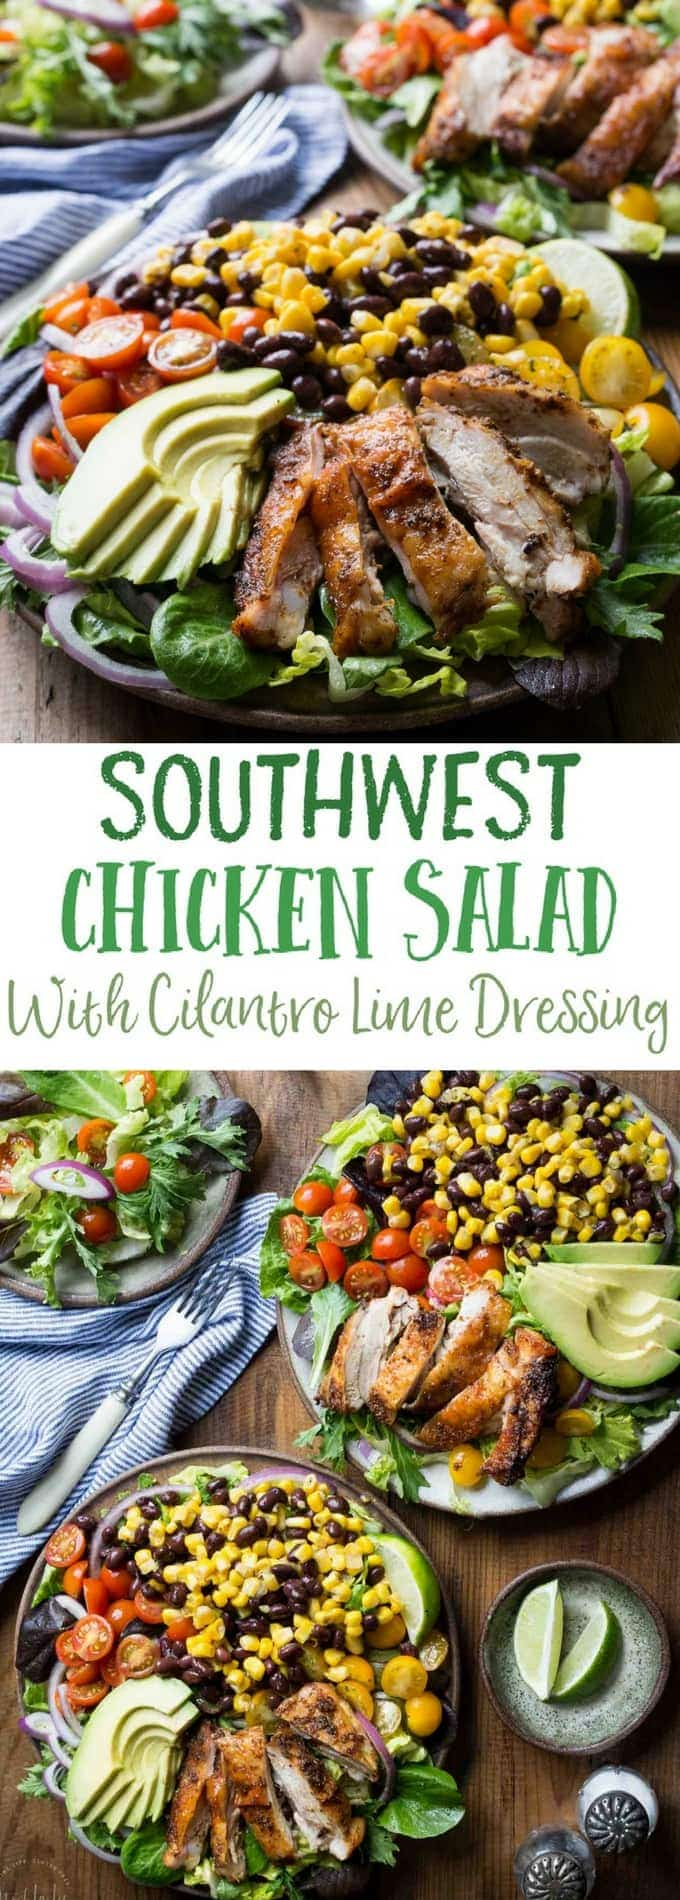 Better than McDonalds Southwest Chicken Salad! chicken marinated in garlic, onion, cumin and oregano and served over a bed of Romaine and salad leaves with sweetcorn, black beans, red onion and avocado, and topped with a homemade Cilantro Lime Dressing. This recipe is gluten free, healthy and delicious, you can grill the chicken too!